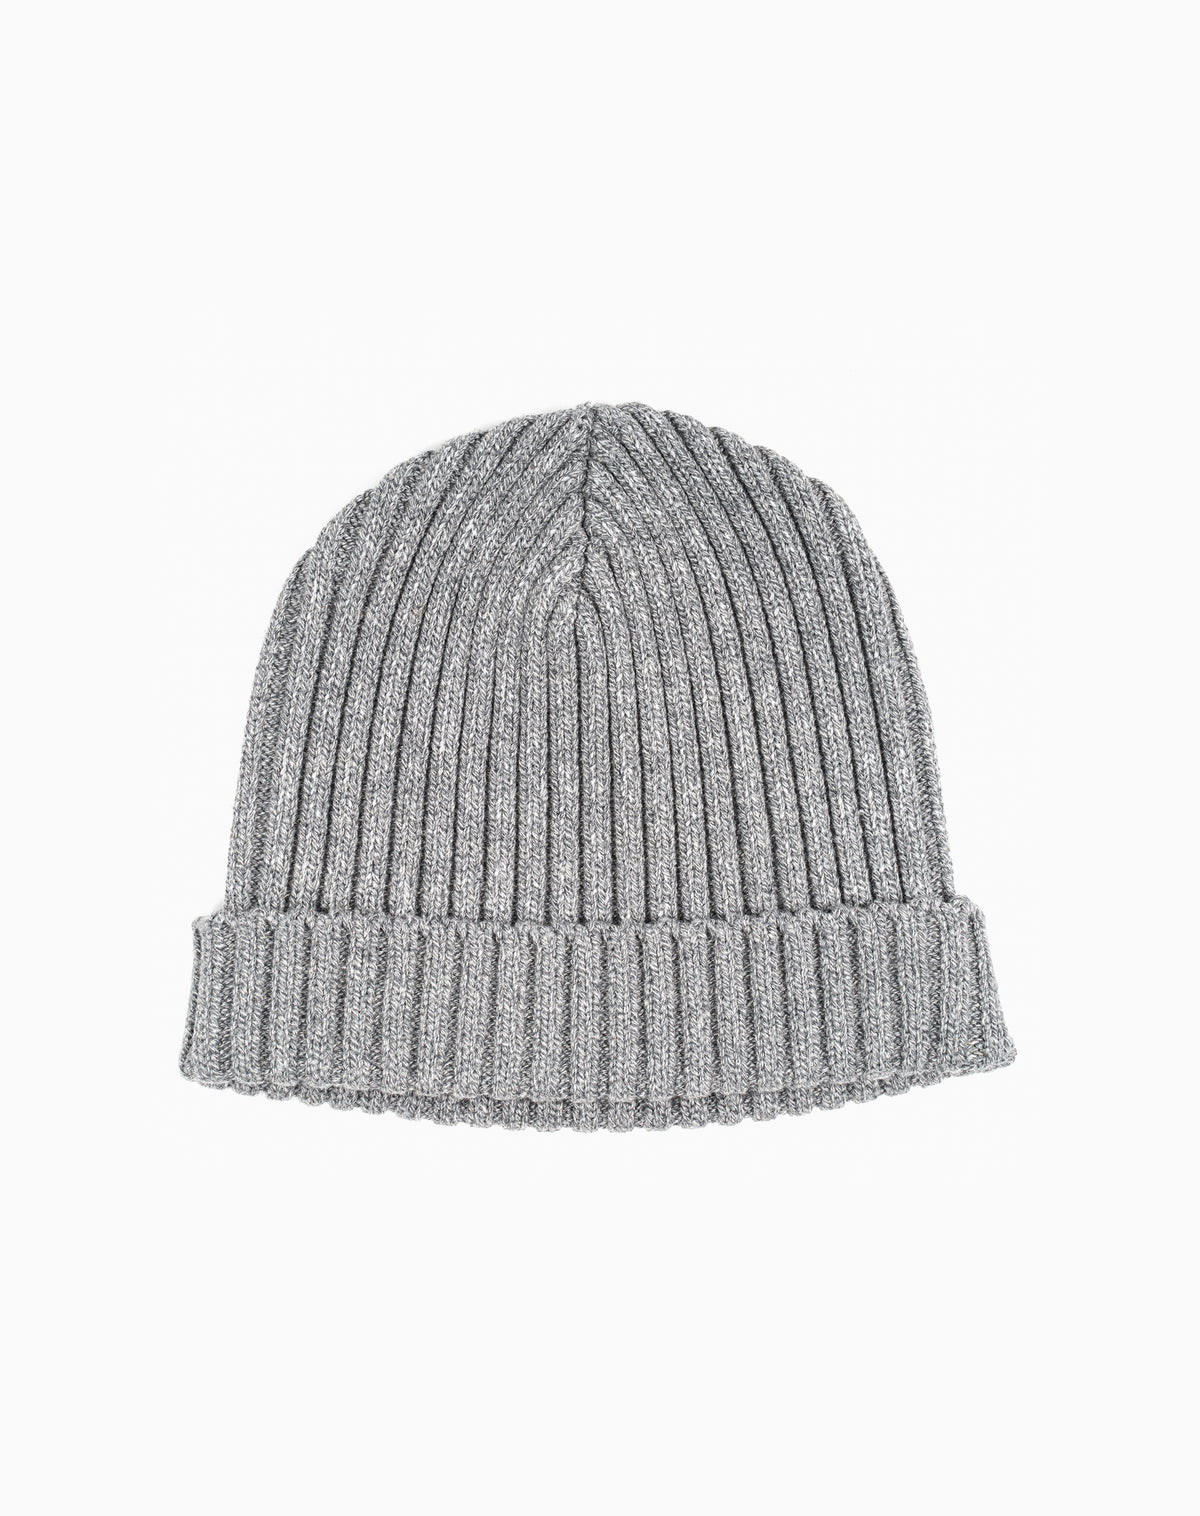 Docksider Knit Beanie in Heather Grey